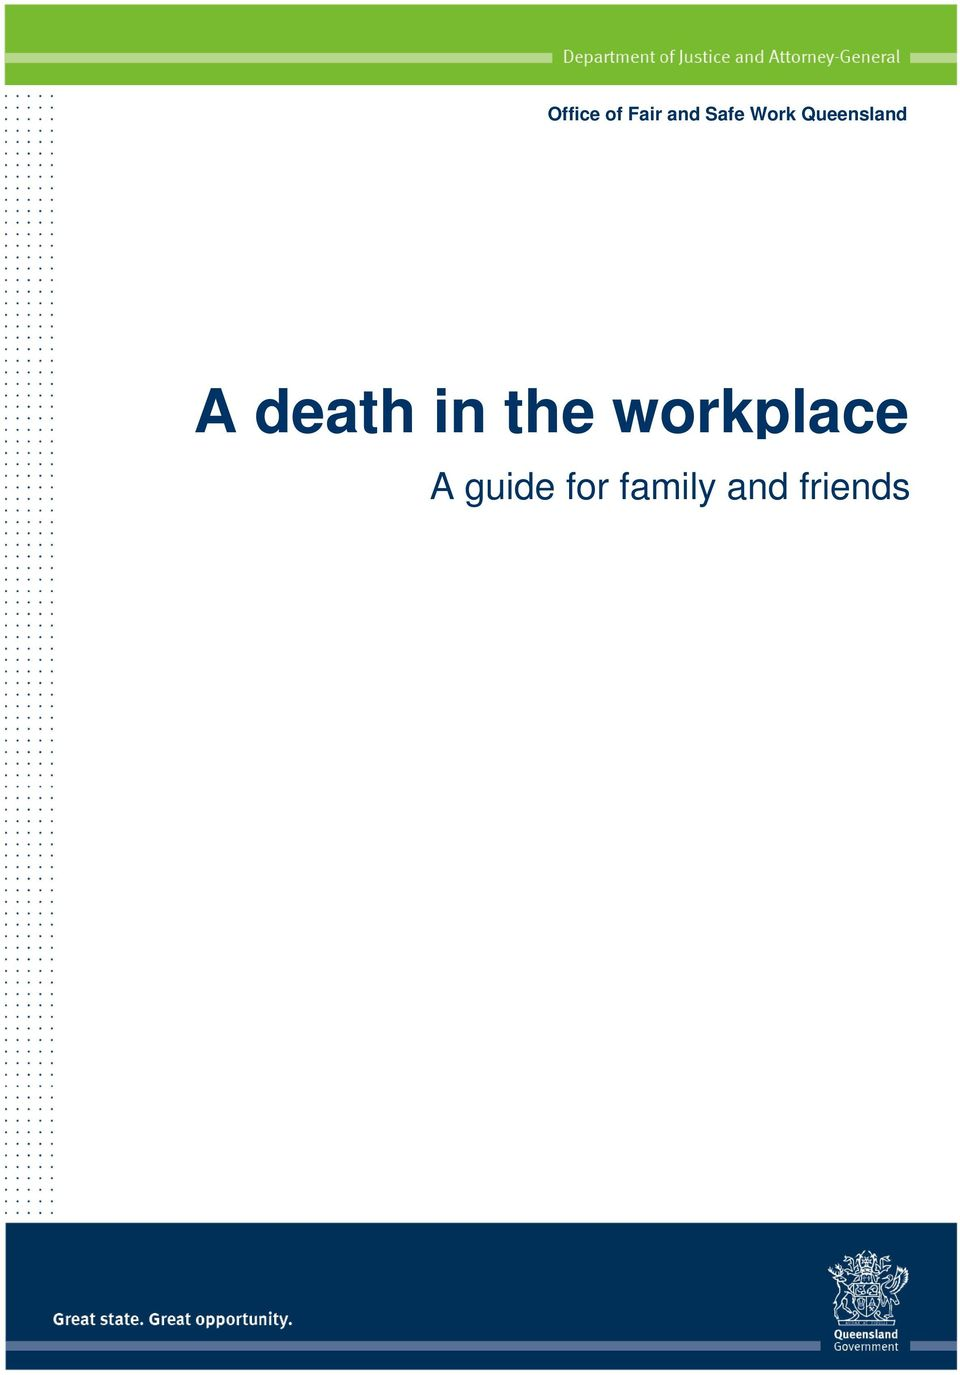 and friends A death in the workplace a